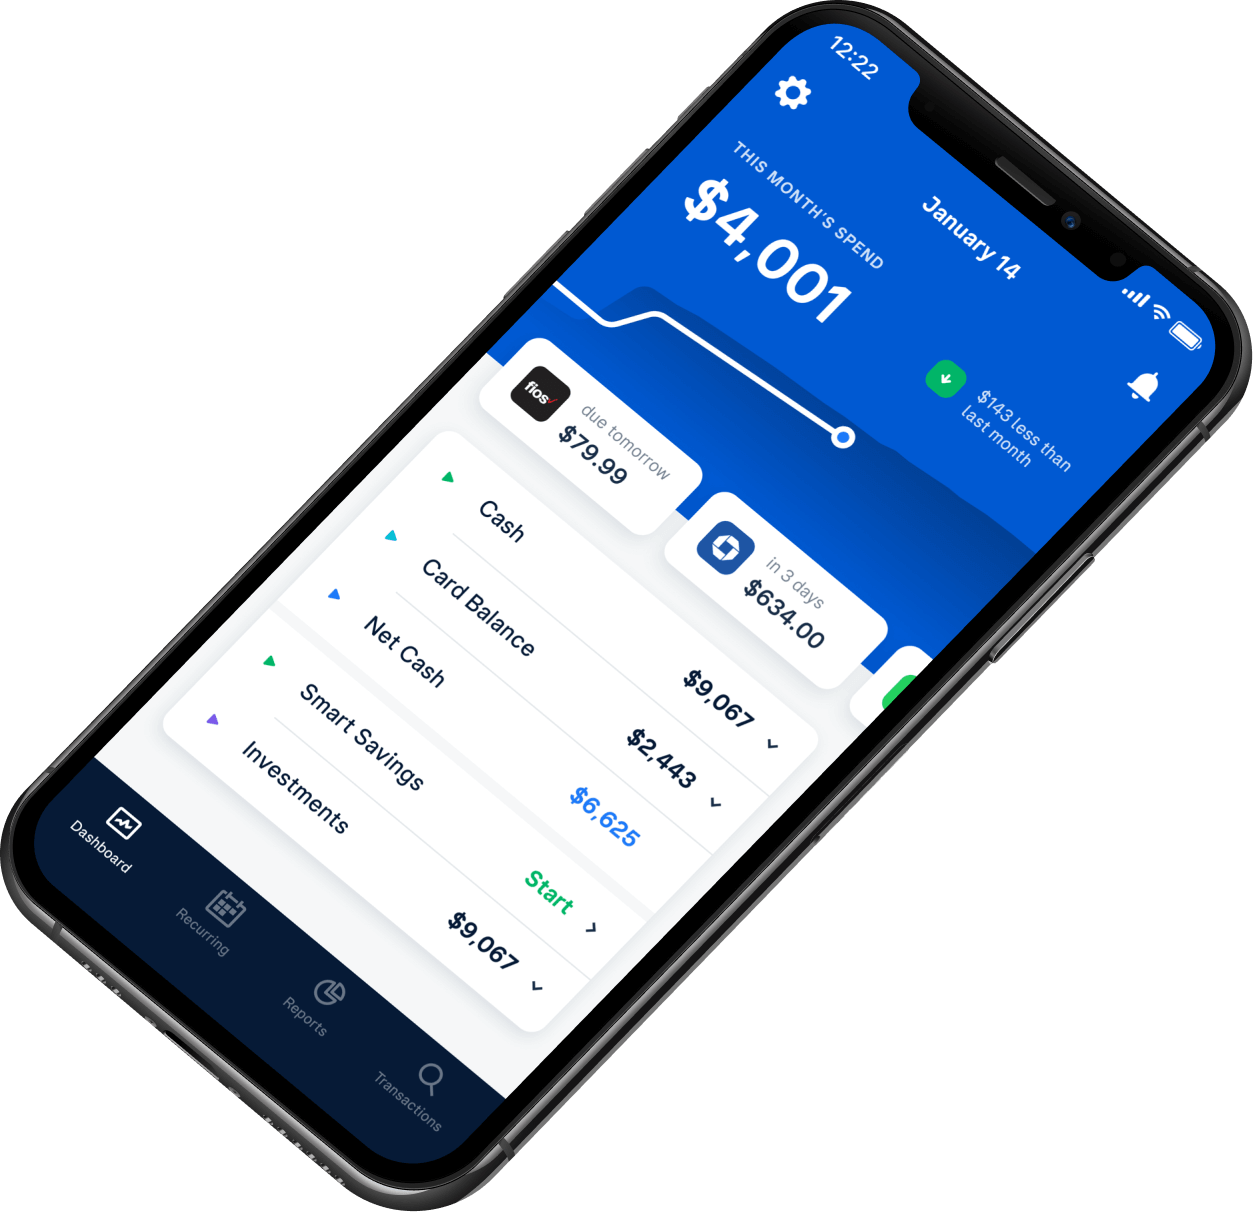 Mobile phone showing Truebill app dashboard. The dashboard features your current spend compared to last month, your upcoming bills, and the balances of your various, connected accounts.